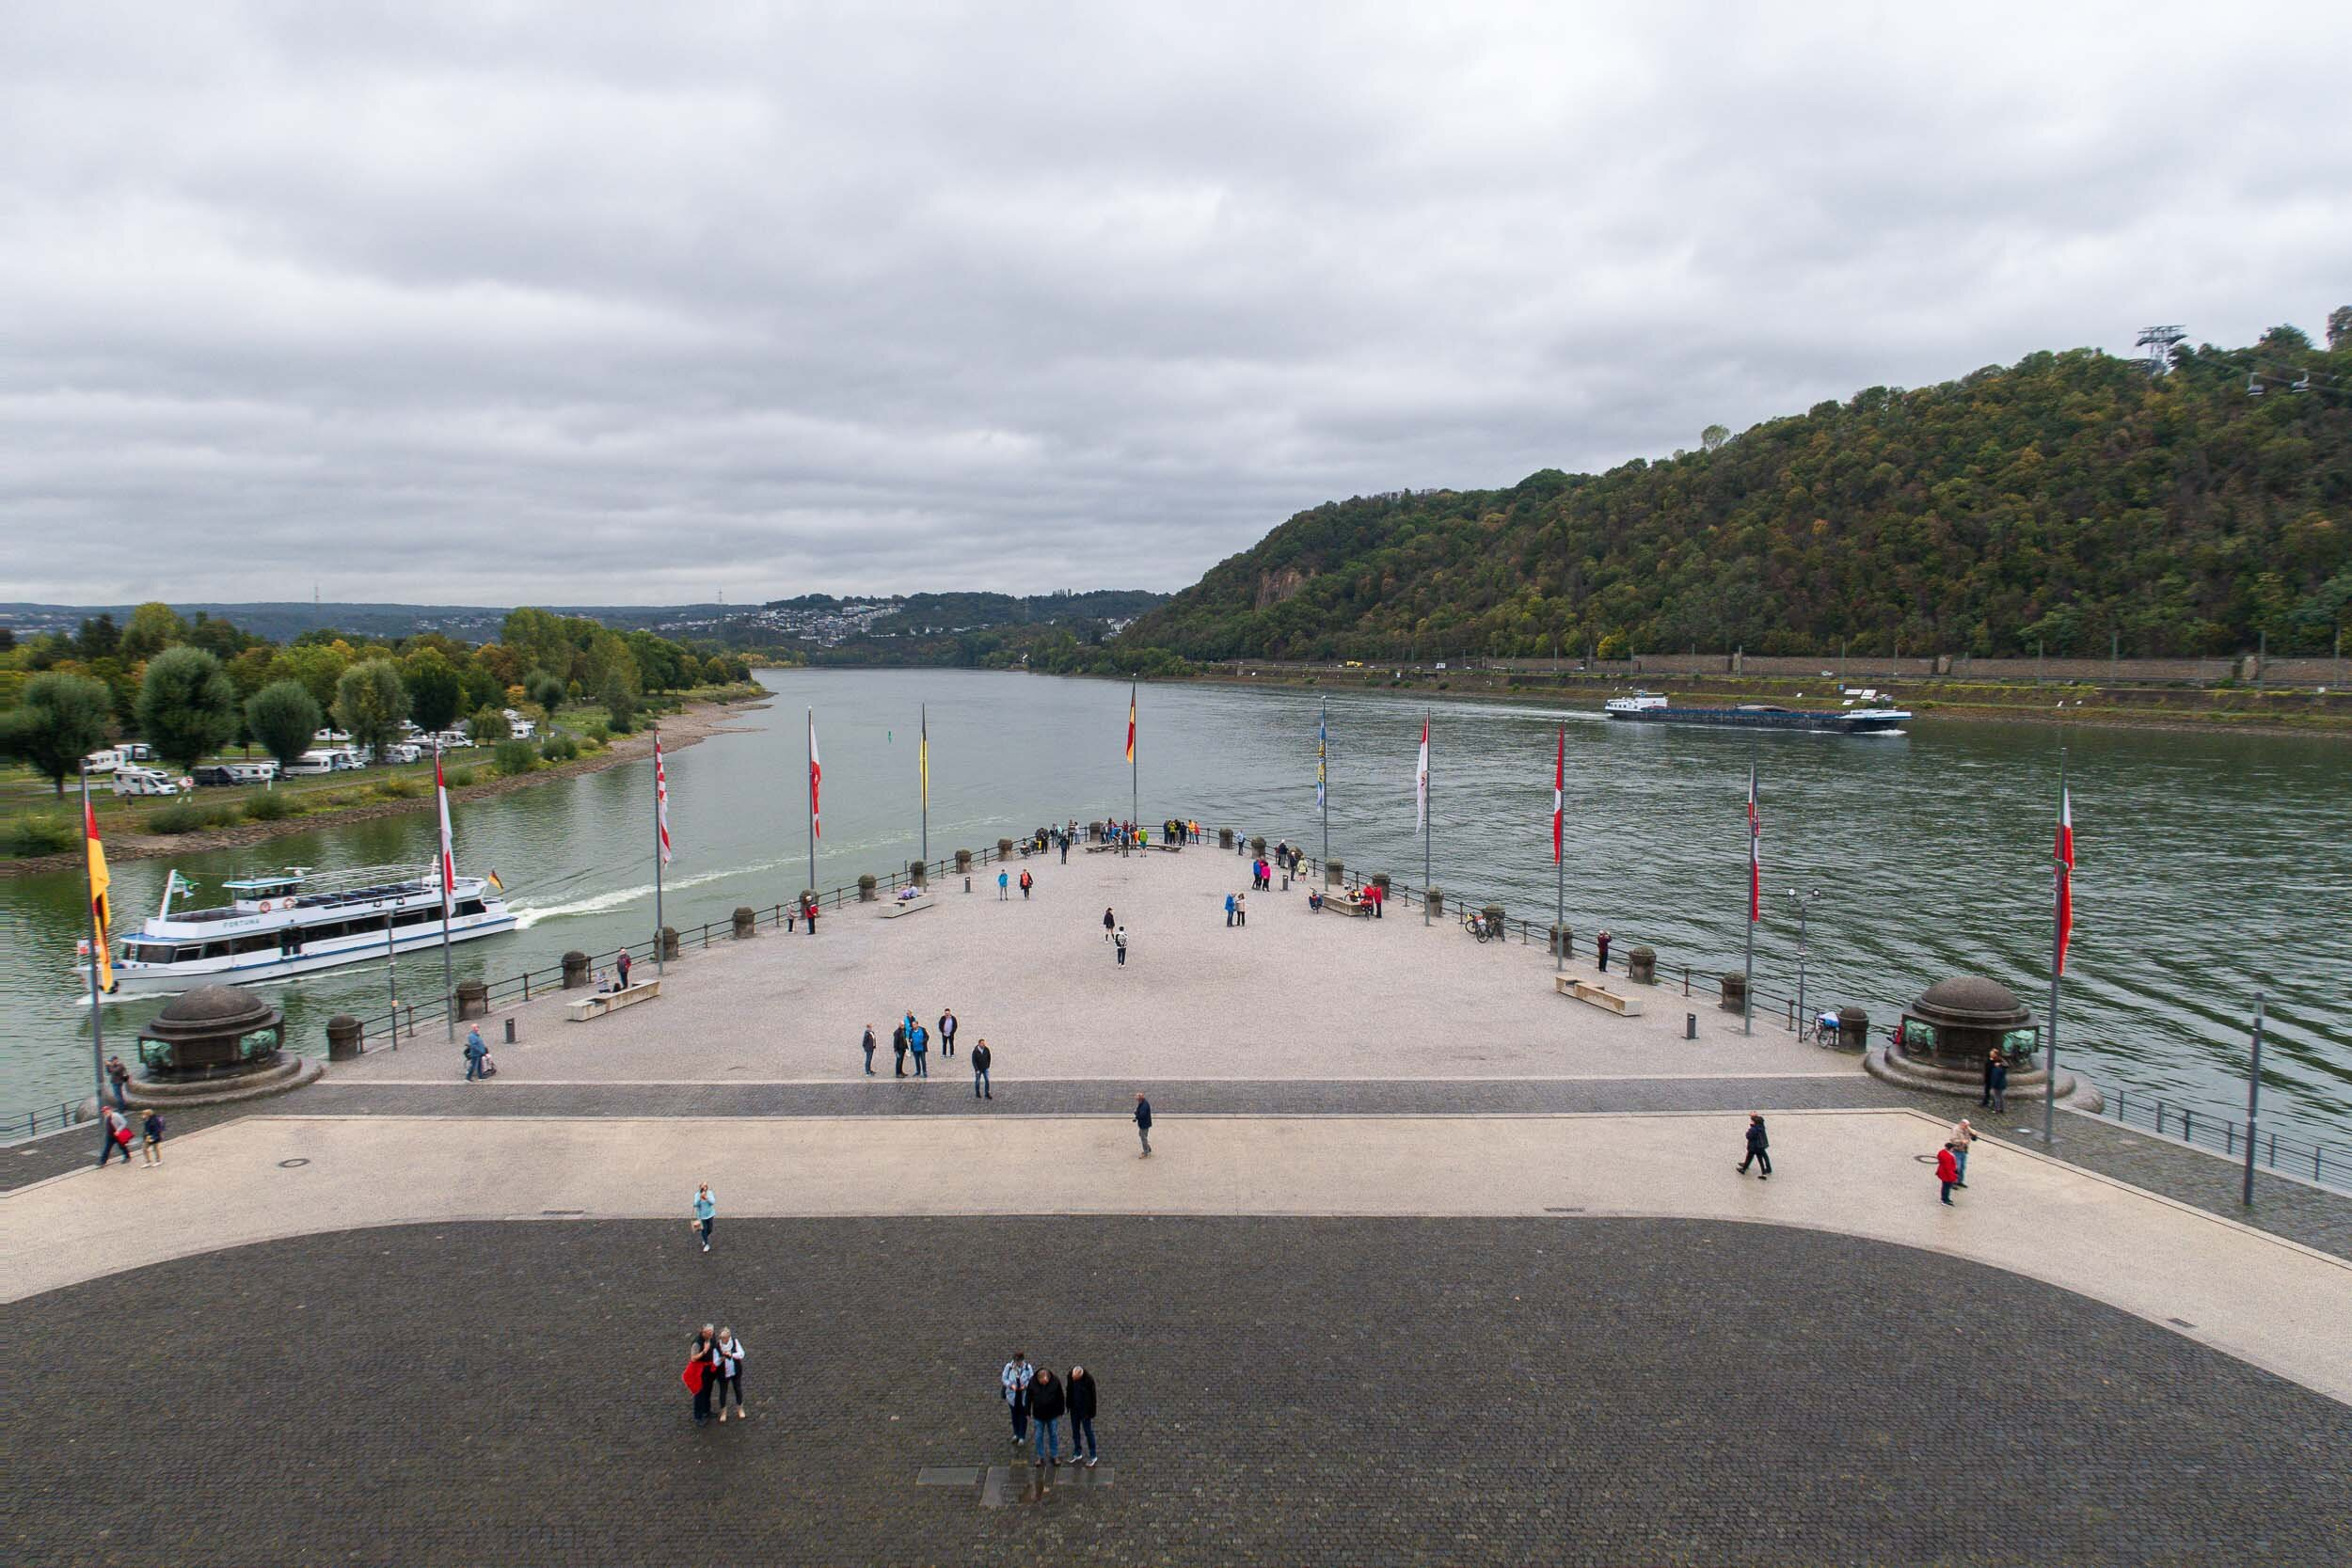 What to see in Koblenz, Germany - a city with a long history.